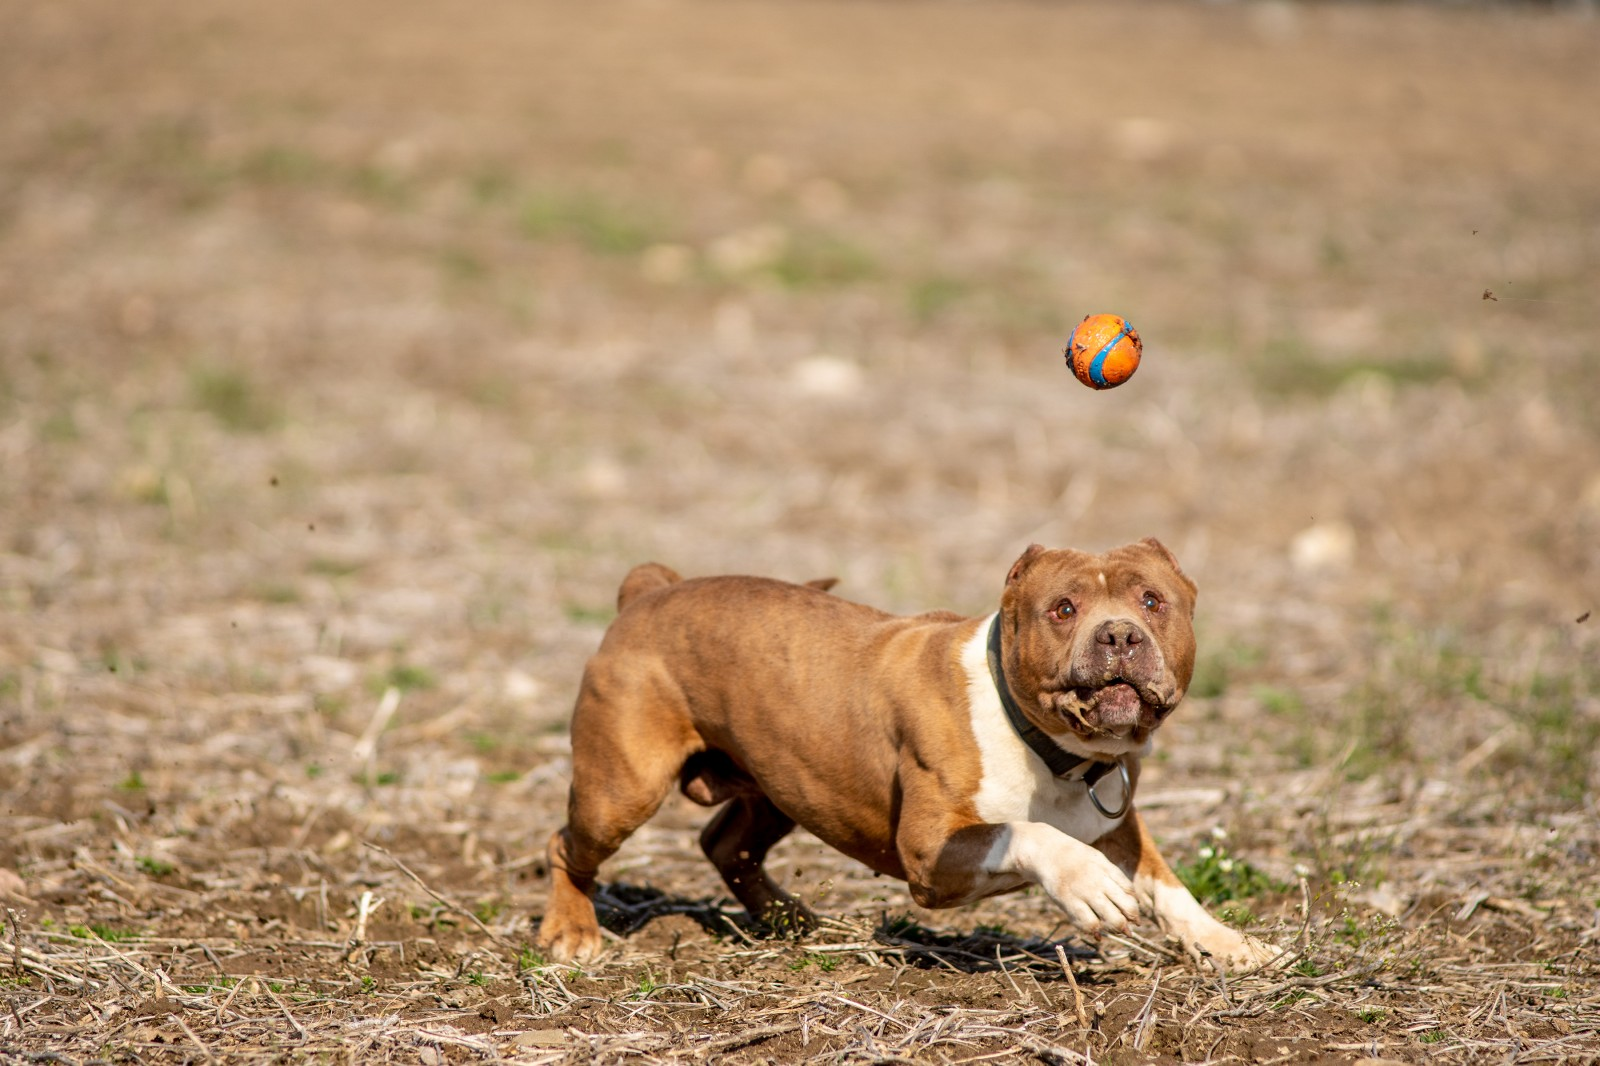 Unleashed Kennelz Taj Mahal, a red xl pit bull with a white chest and front paws is frozen mid stride chasing a ball in a field.